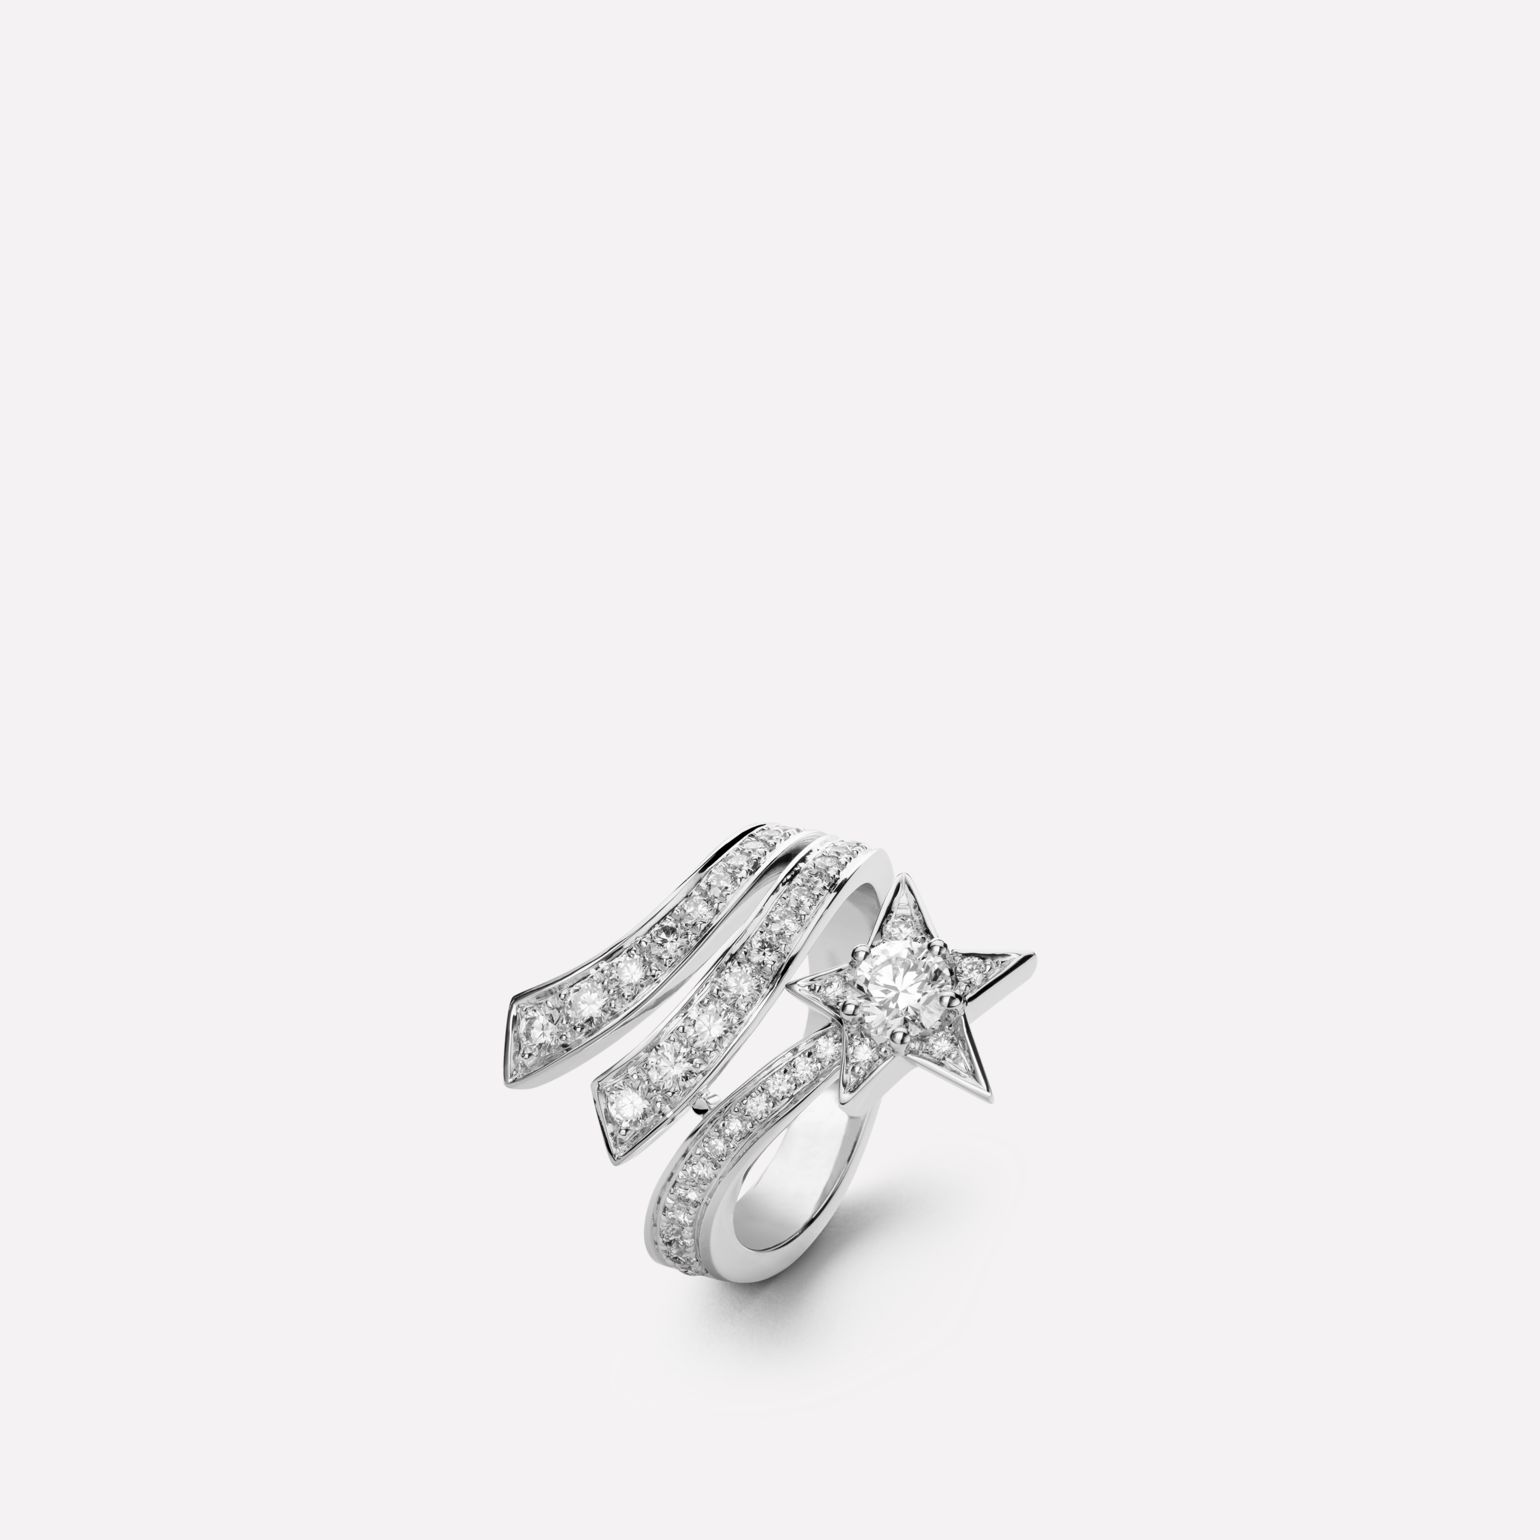 Comète ring Shooting star ring in 18K white gold and diamonds with one center diamond